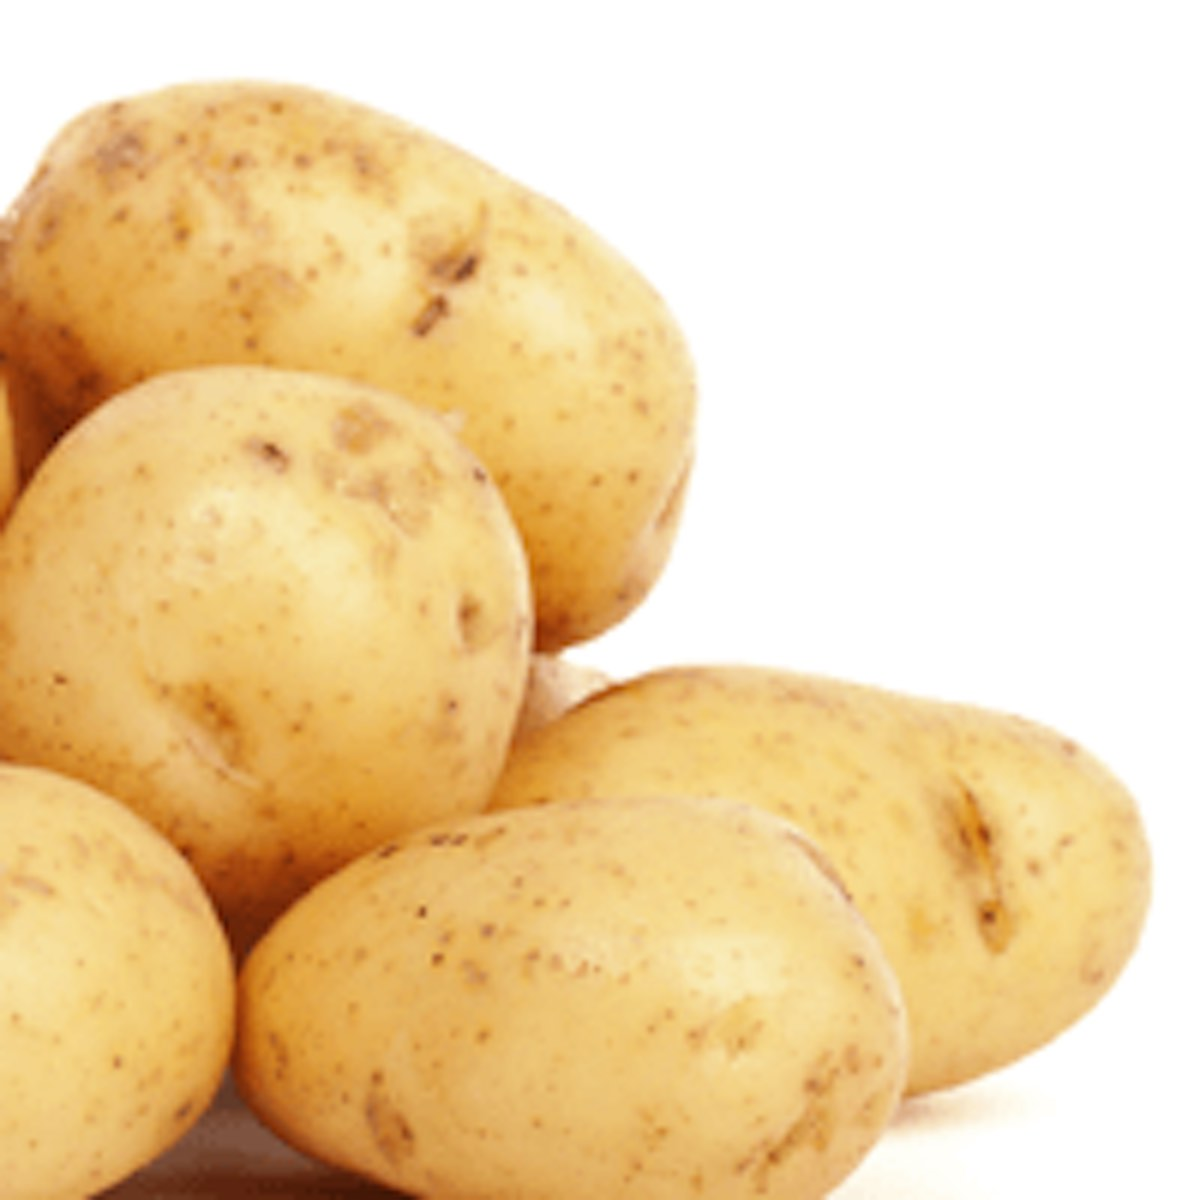 Potatoes Russet Flesh And Skin Baked Nutrition Facts Calories